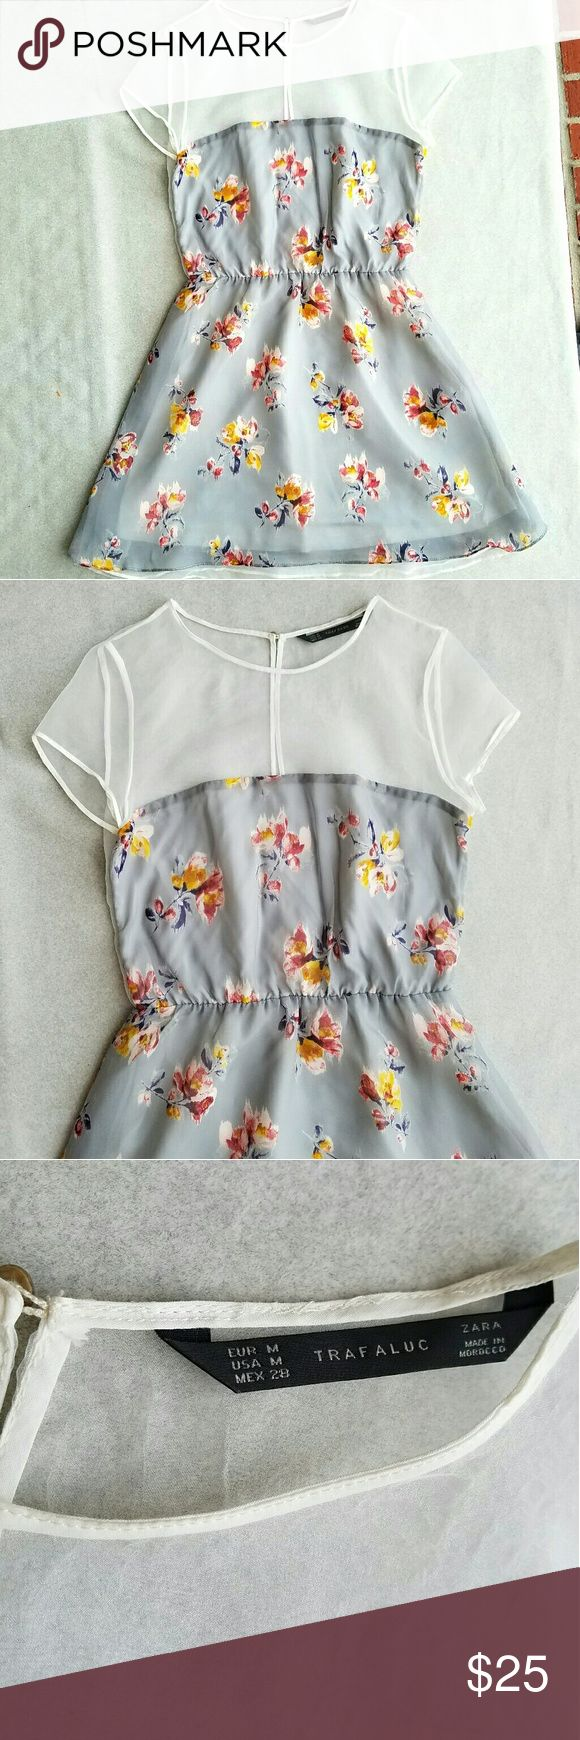 Zara Trafaluc Sheer Top Floral Dress Spring and summer dress with sheer top and back. High neck with keyhole close in back. Skirt is flowy. Cute floral pattern. Excellent condition. Zara Dresses